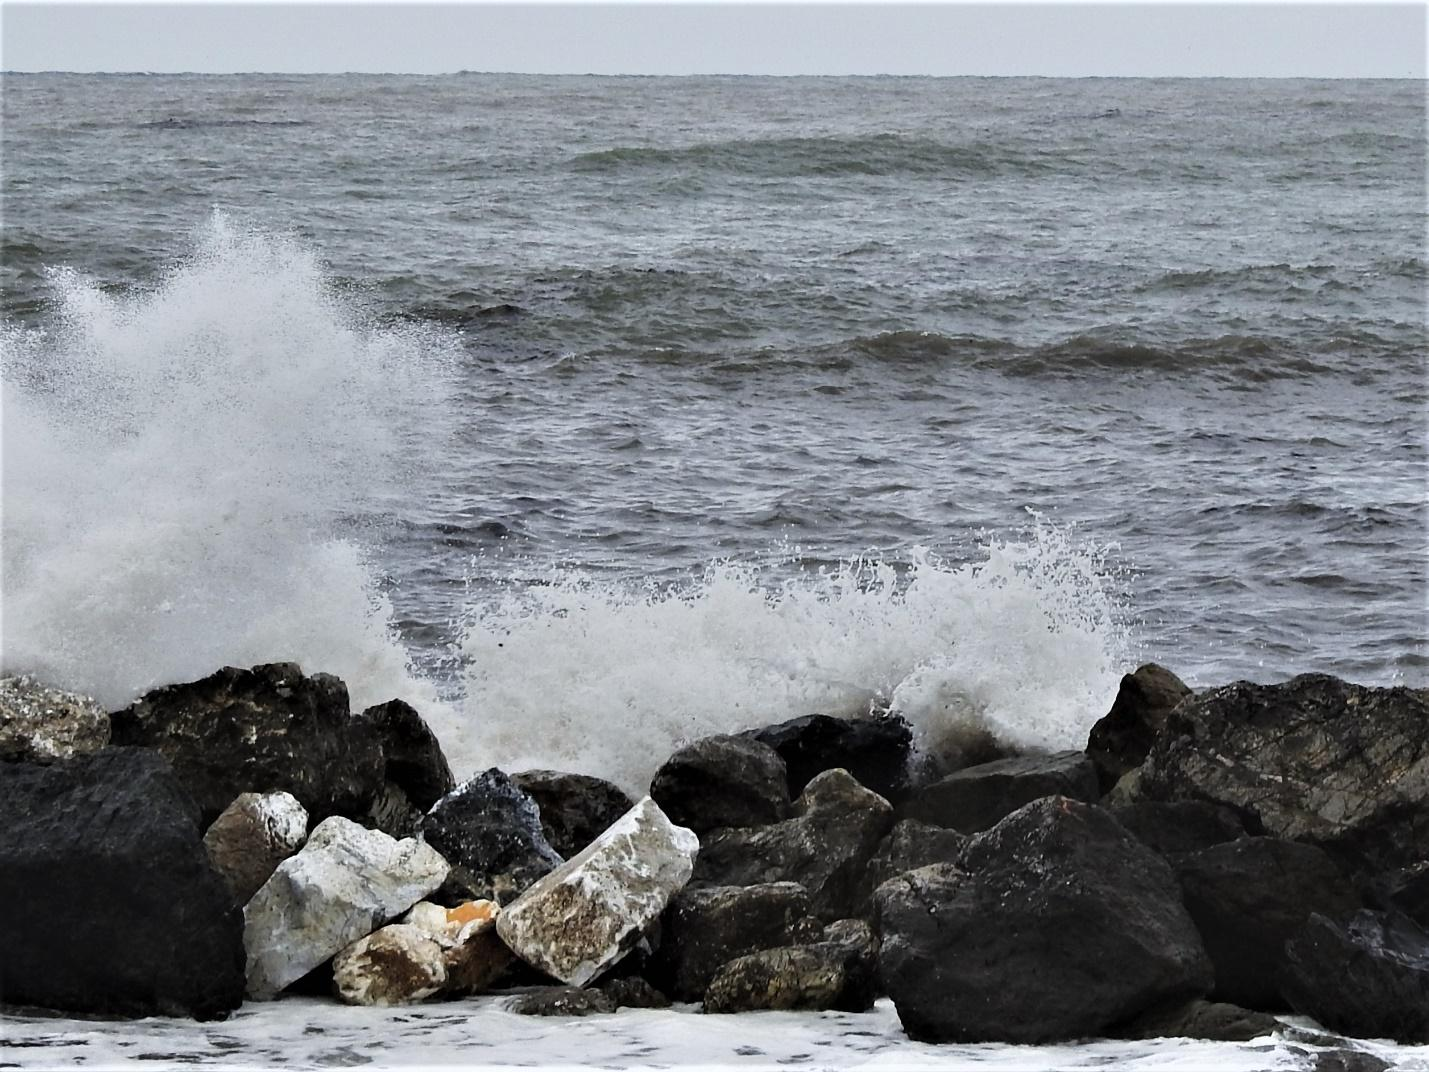 A rocky beach next to the oceanDescription generated with very high confidence